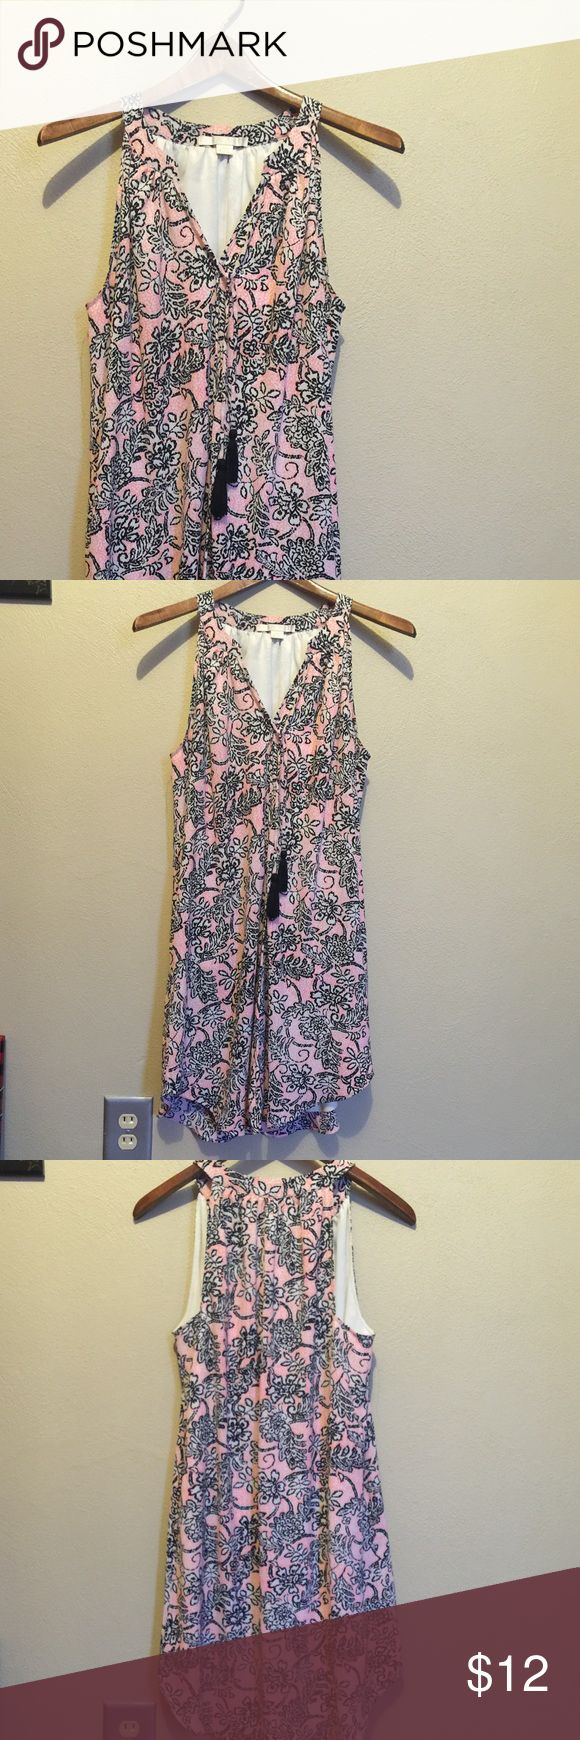 """fun paisley print dress has a built in slip and is about right above knee length on me (im 5'5"""") worn once to a wedding! 🔹 literally any time you bundle 3+ items, offer me $15 and i will ALWAYS accept! even if one of the items is originally listed for $15! i believe in good deals and helping others get good deals! no exceptions! 🔹 Dresses Mini"""